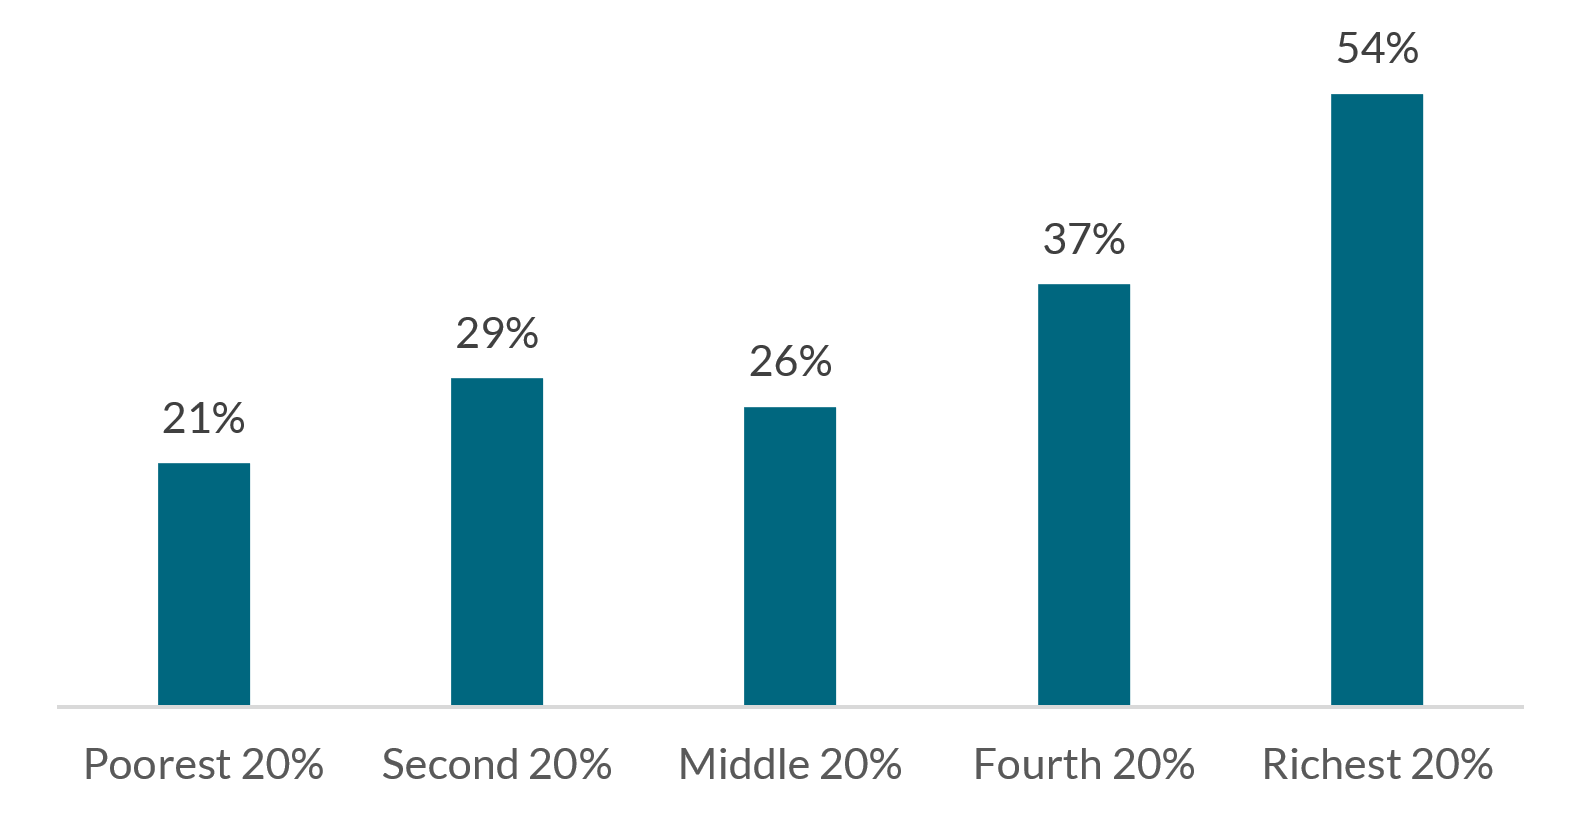 Percent, from 31 to 54, of adults with bank accounts for each income quintile.